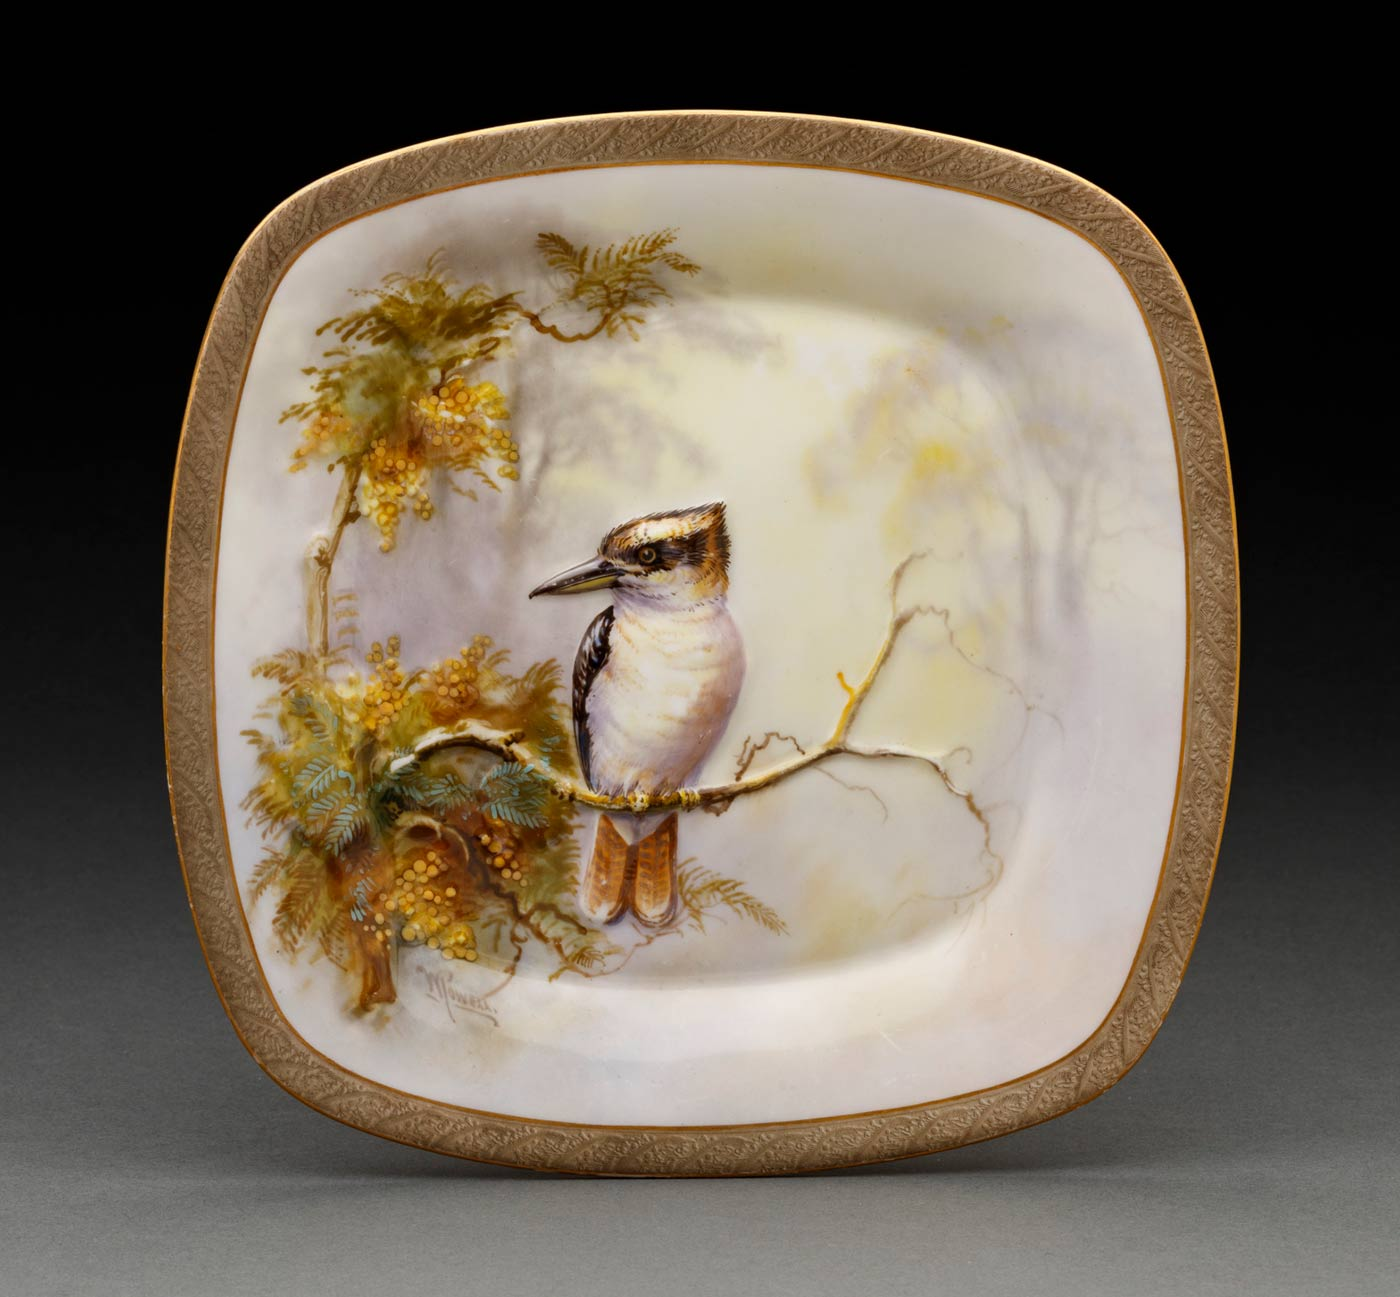 A white square plate embossed and painted with a Kookaburra sitting on a branch with yellow flowers and green leaves against a yellow and purple background, signed on left 'W POWELL' in brown, edges decorated with gold lines and a band of olive green lightly embossed with leaf design, paint missing in some areas. - click to view larger image